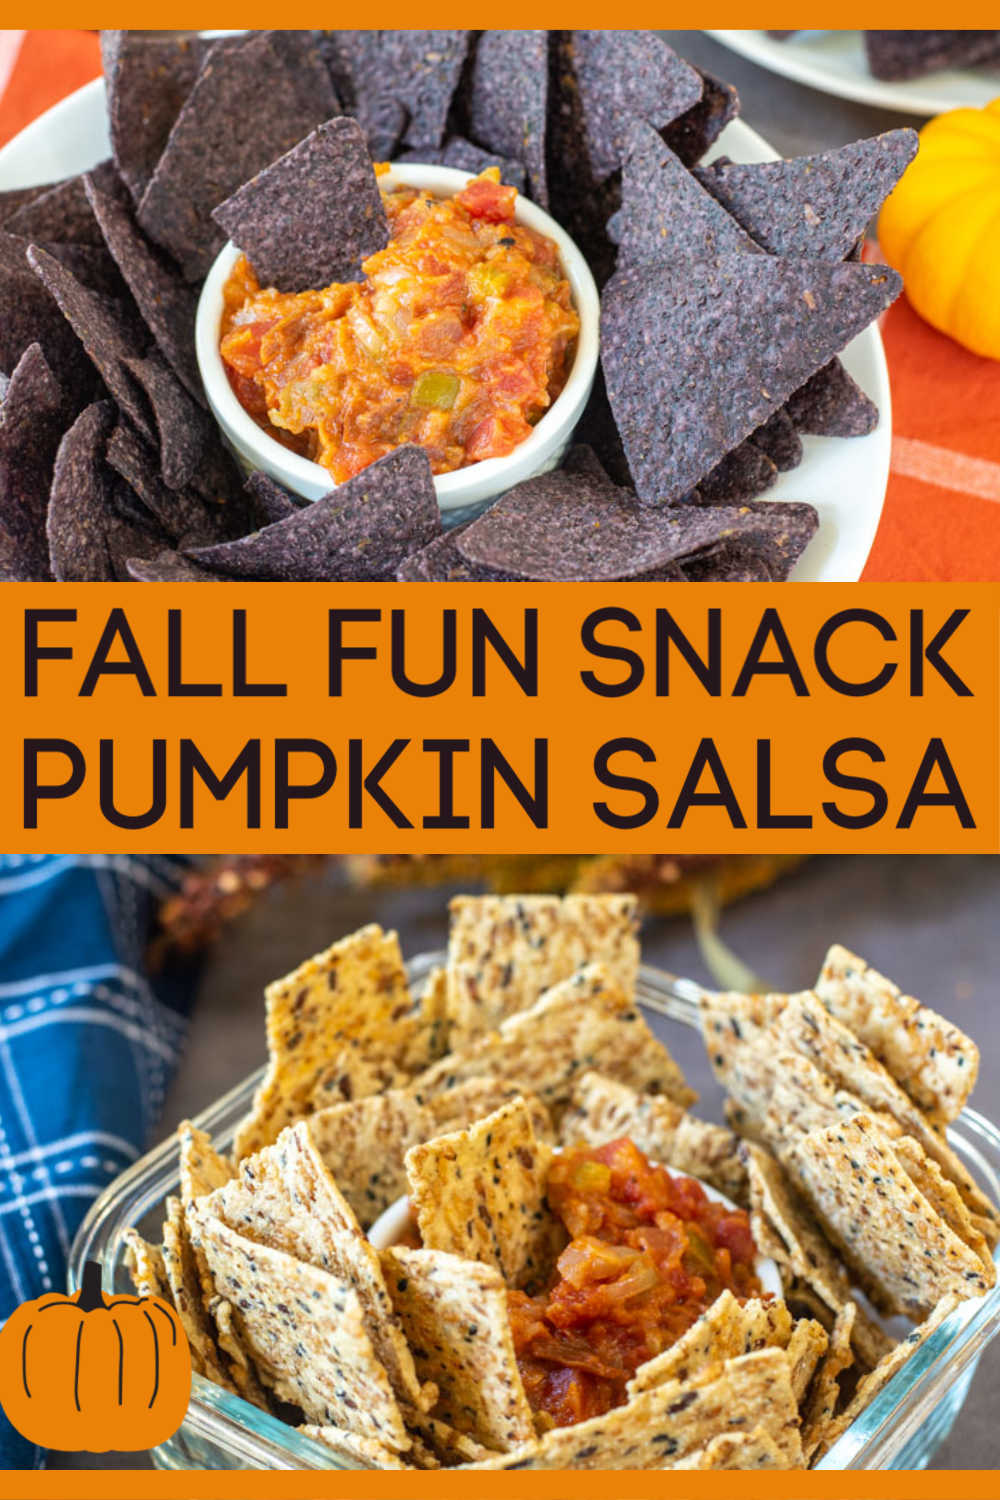 Pumpkin Salsa is easy to make and perfect for football games and BBQs alike. Made with a few hearty ingredients, this chunky dipping snack can be put together in minutes!